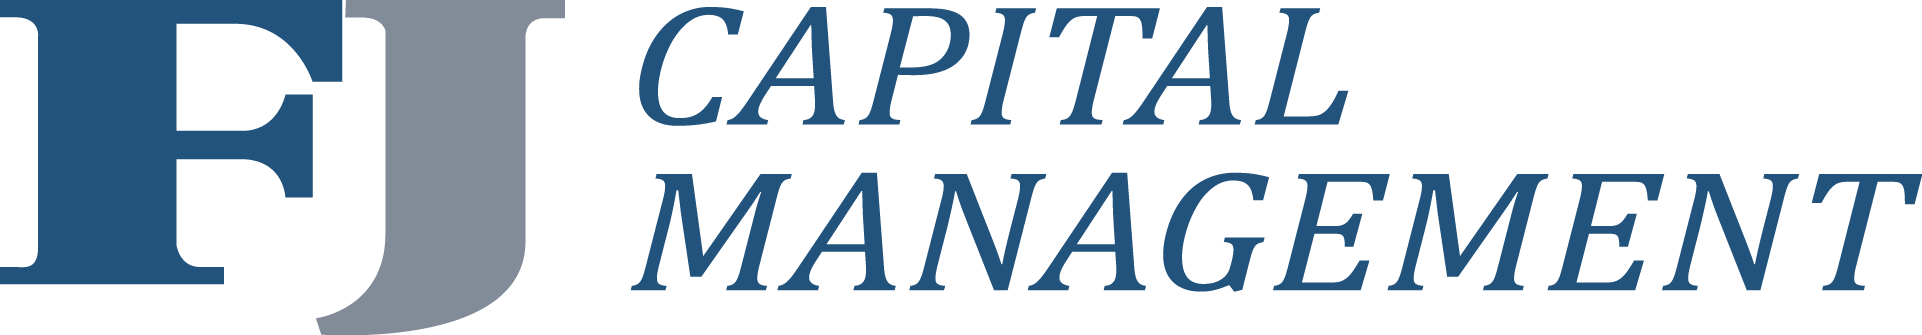 FJ Capital Mgmt New Logo 2015